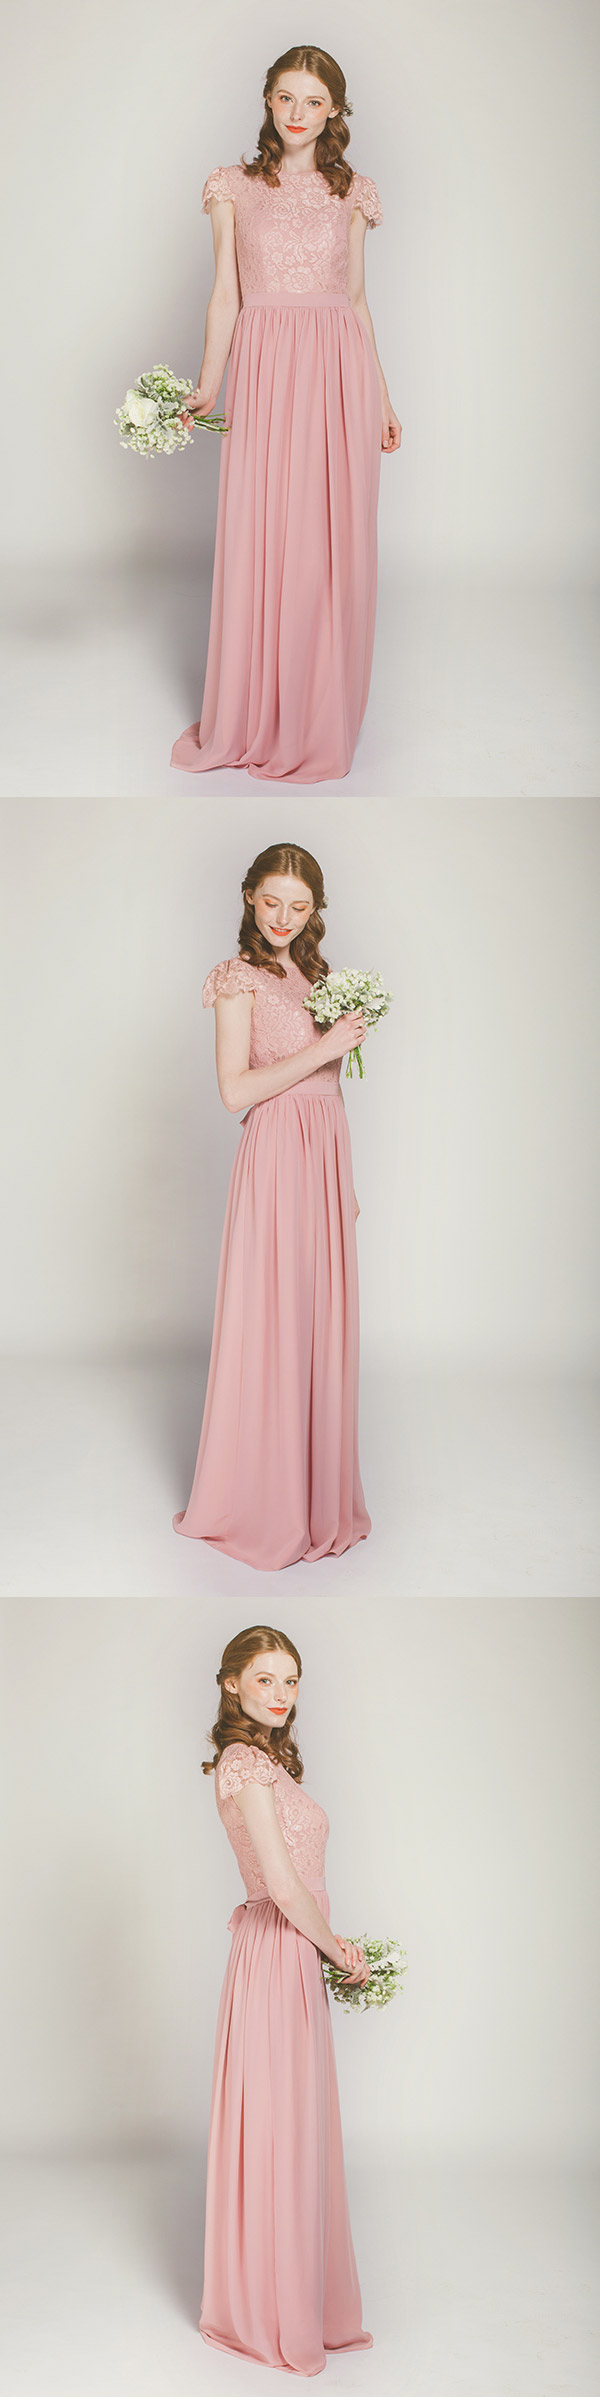 elegant-dusty-rose-lace-and-chiffon-bridesmaid-dress-in-long-length-with-cap-sleeves